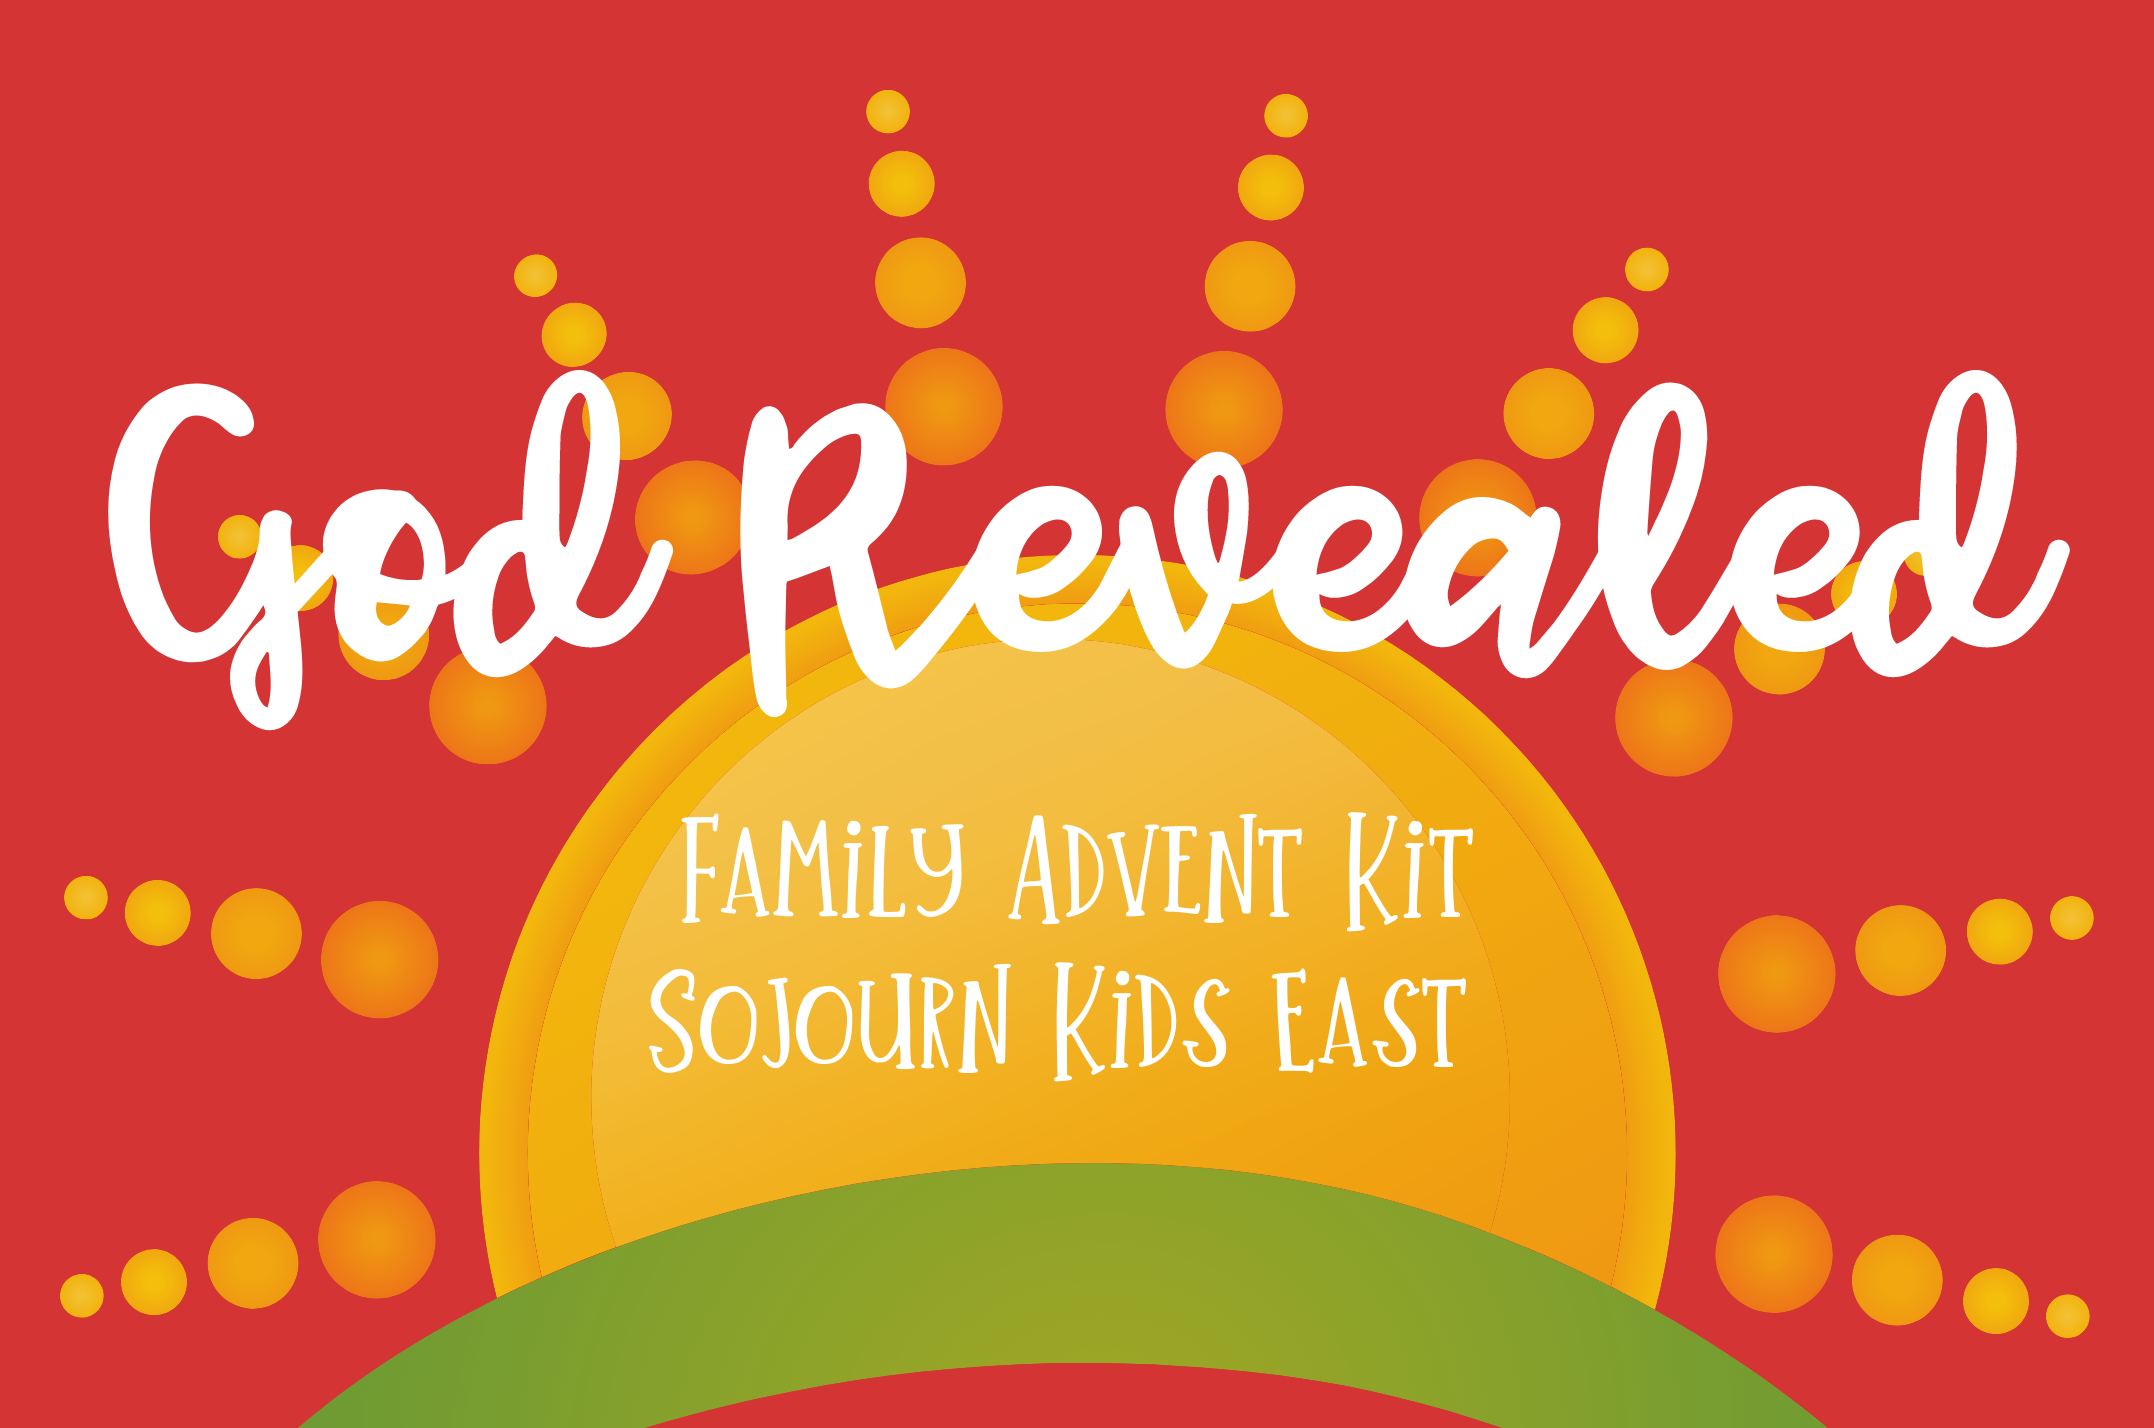 Sojourn Kids East - Advent Kits